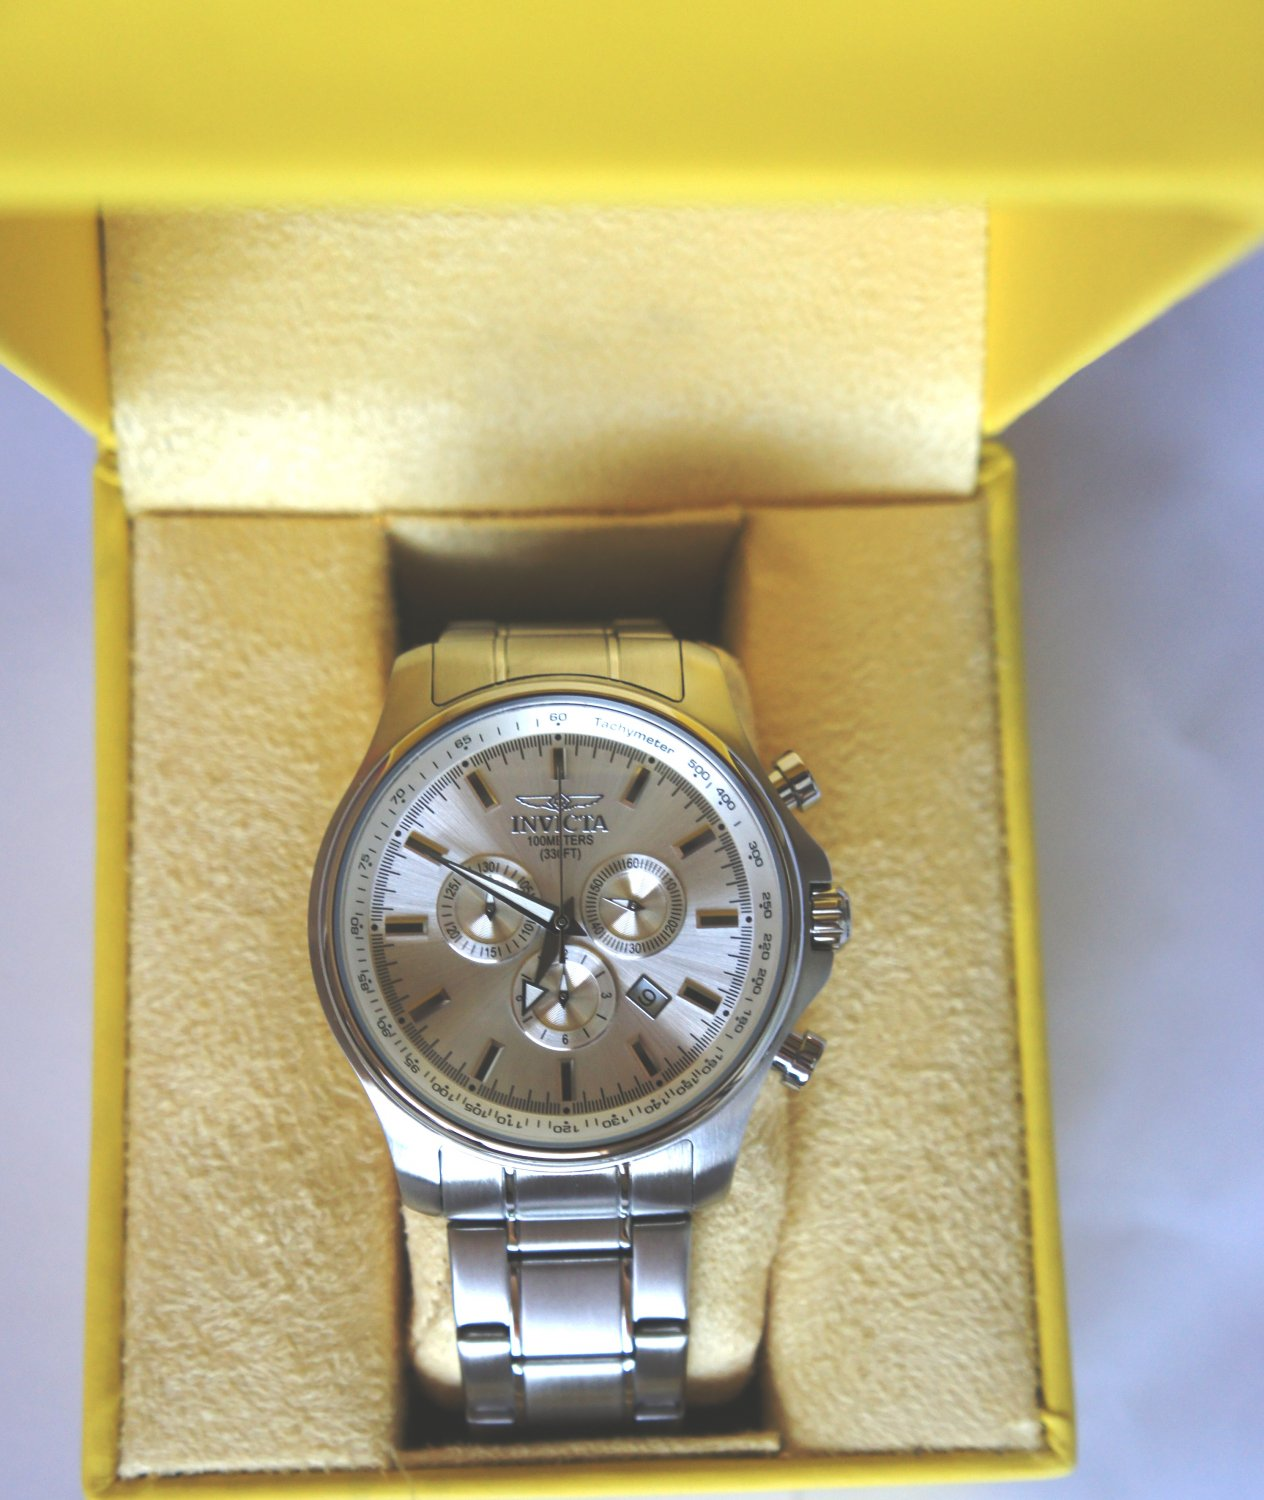 Invicta Stainlees Steel Silver Dial SWISS Watch For Men - Model 1833